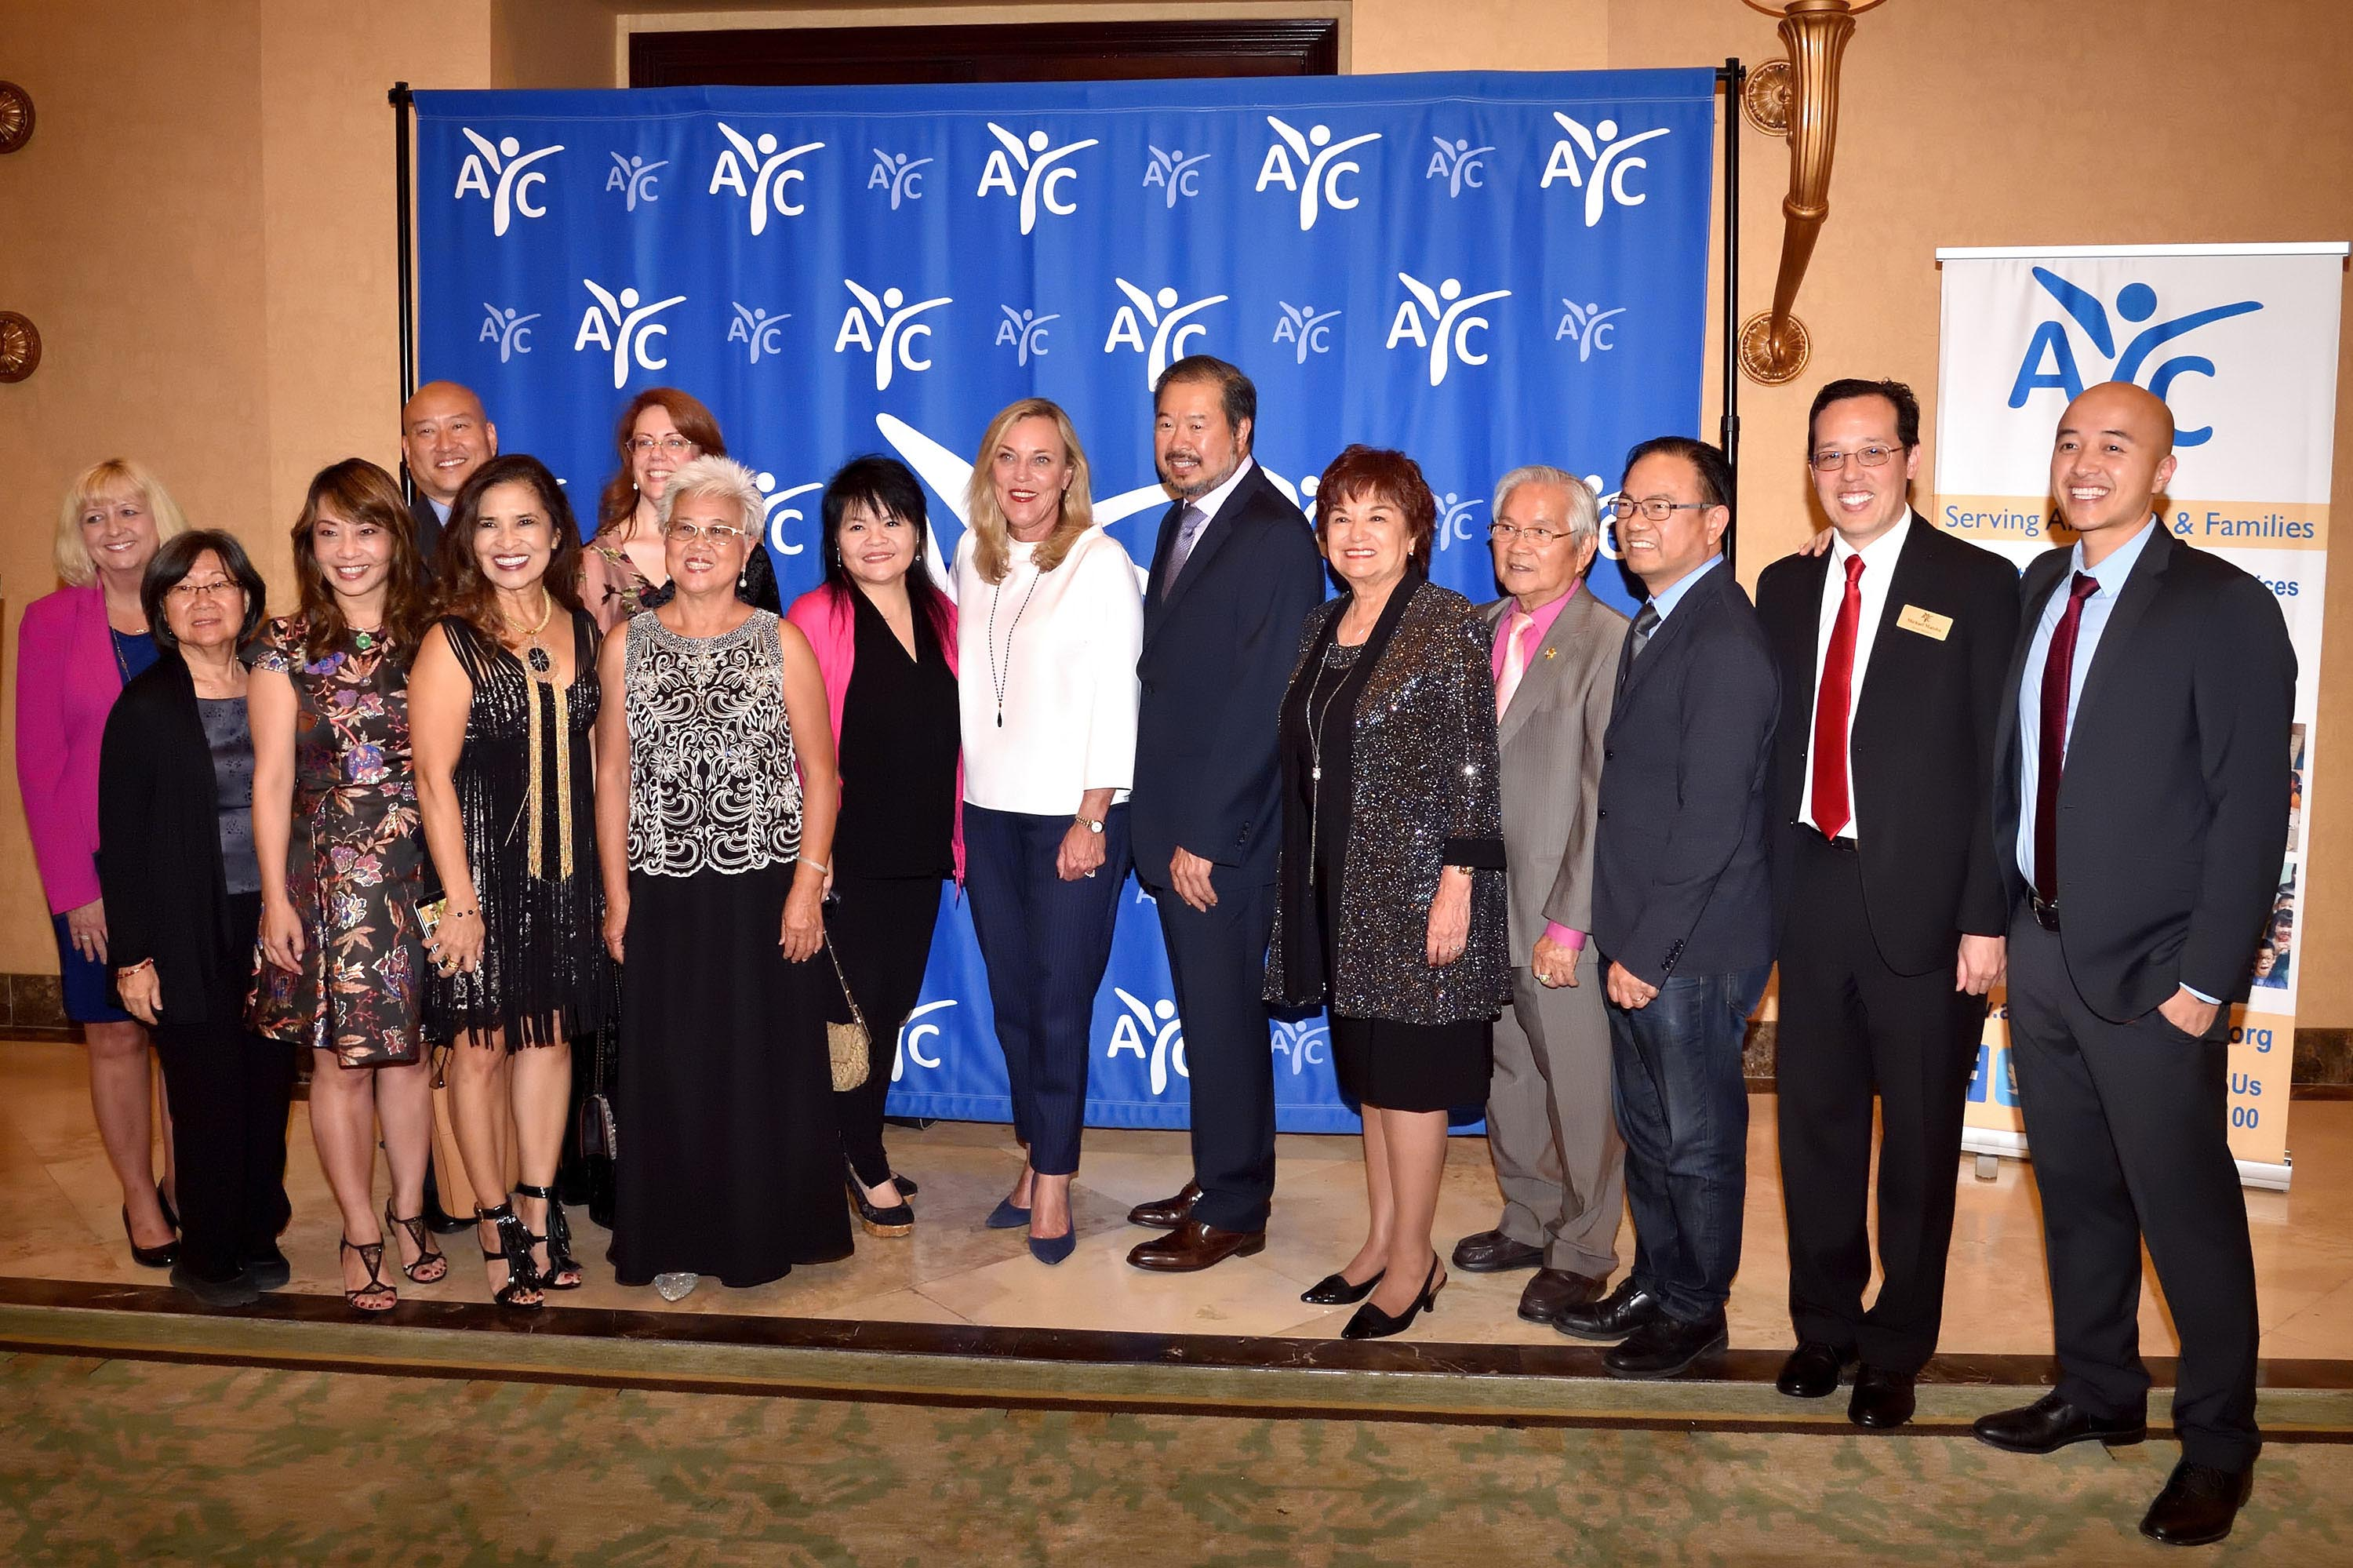 District 5 – Supervisor Kathryn Barger<br> <b>Oct. 26, 2018 – Asian Youth Center Awards. </b><br> <i>Photo by Steven Georges / For the Board of Supervisors</i>